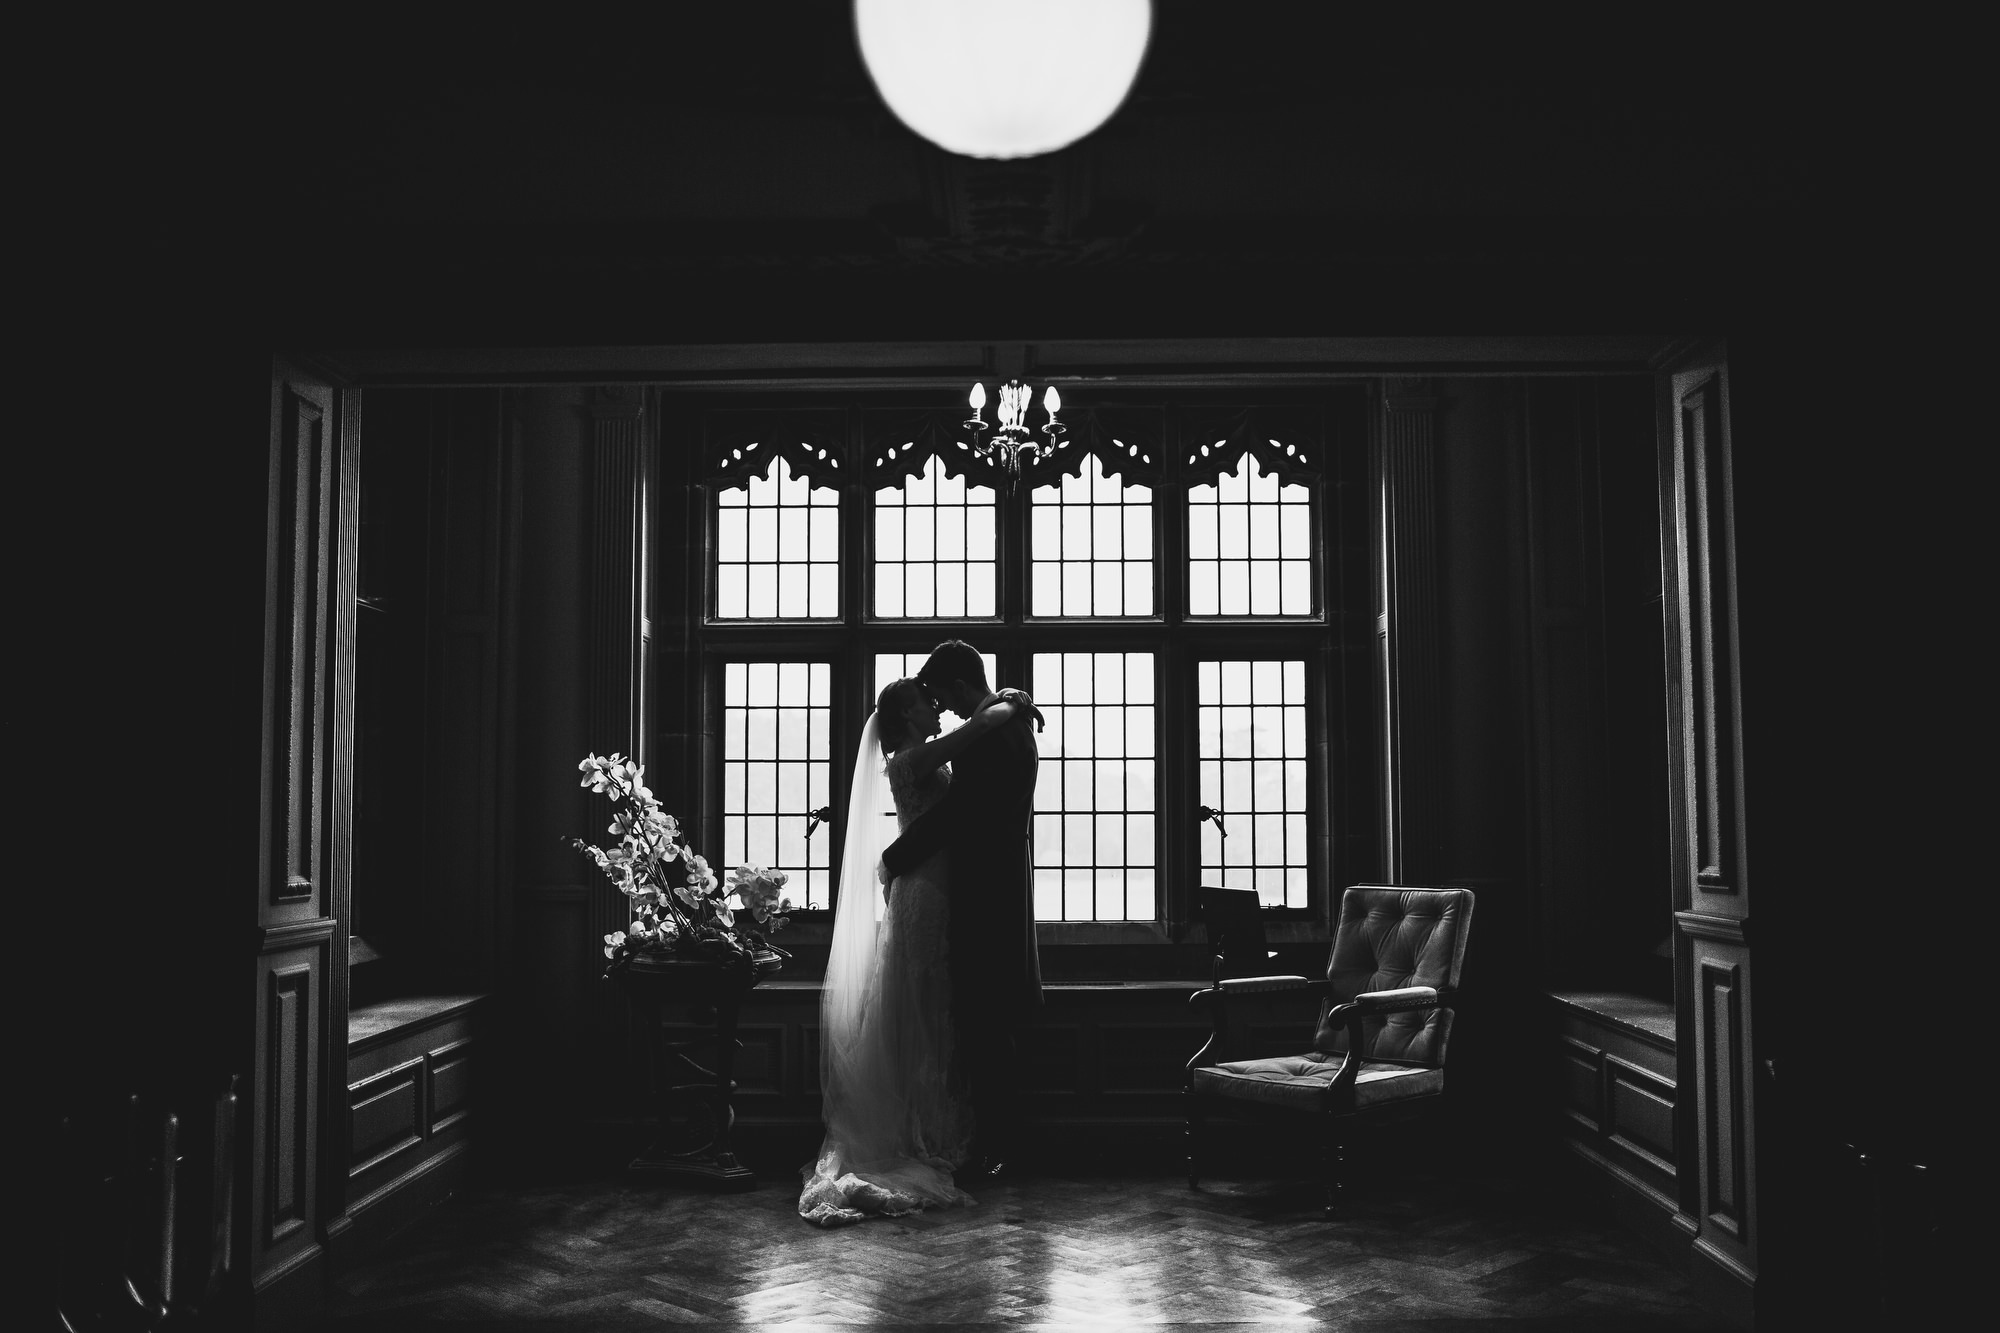 thornton-manor-wedding-photography-sarah-rich-38